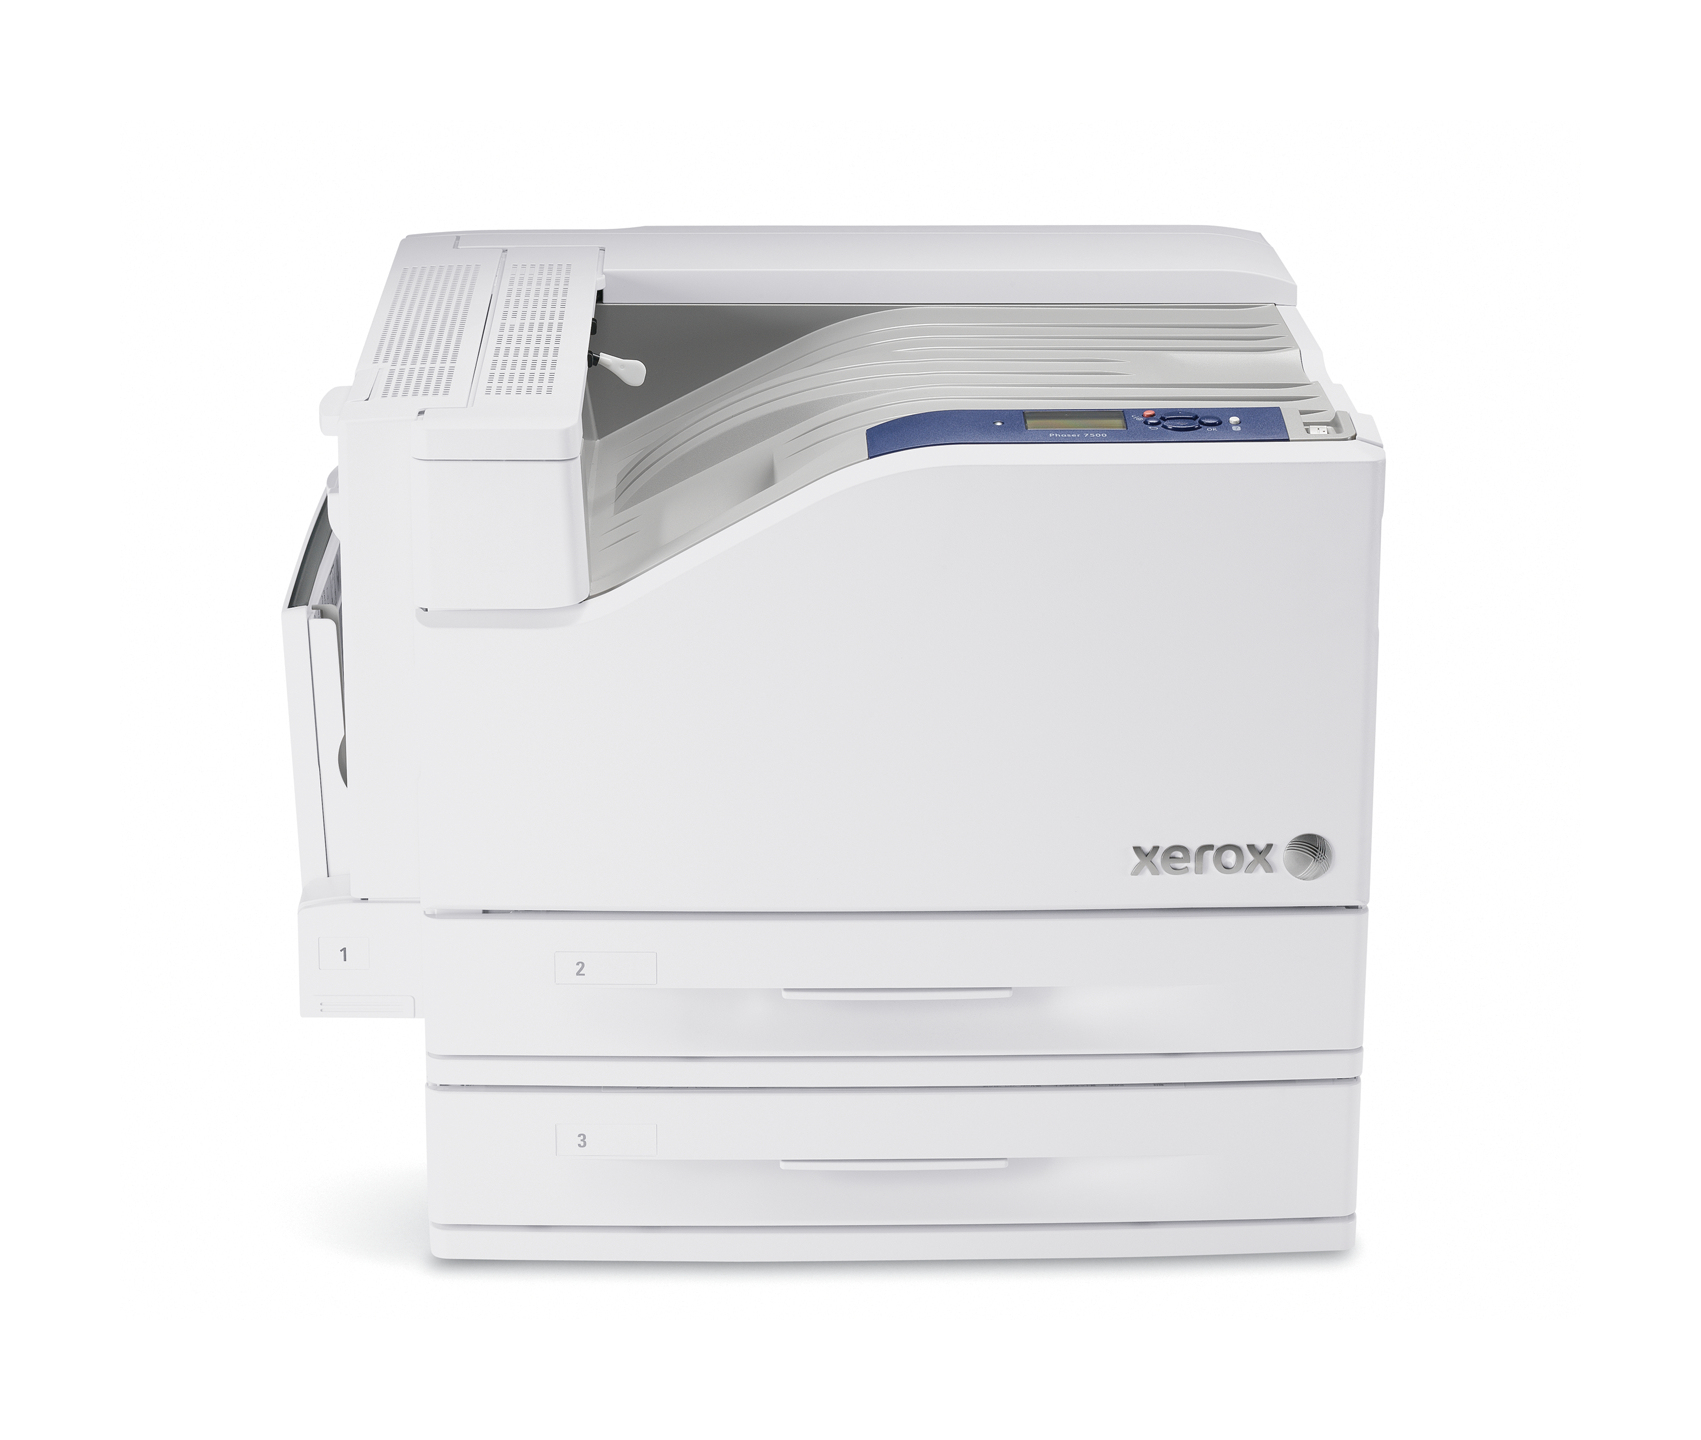 Xerox Phaser 7500V_DT Colour 1200 x 1200DPI A3 laser printer